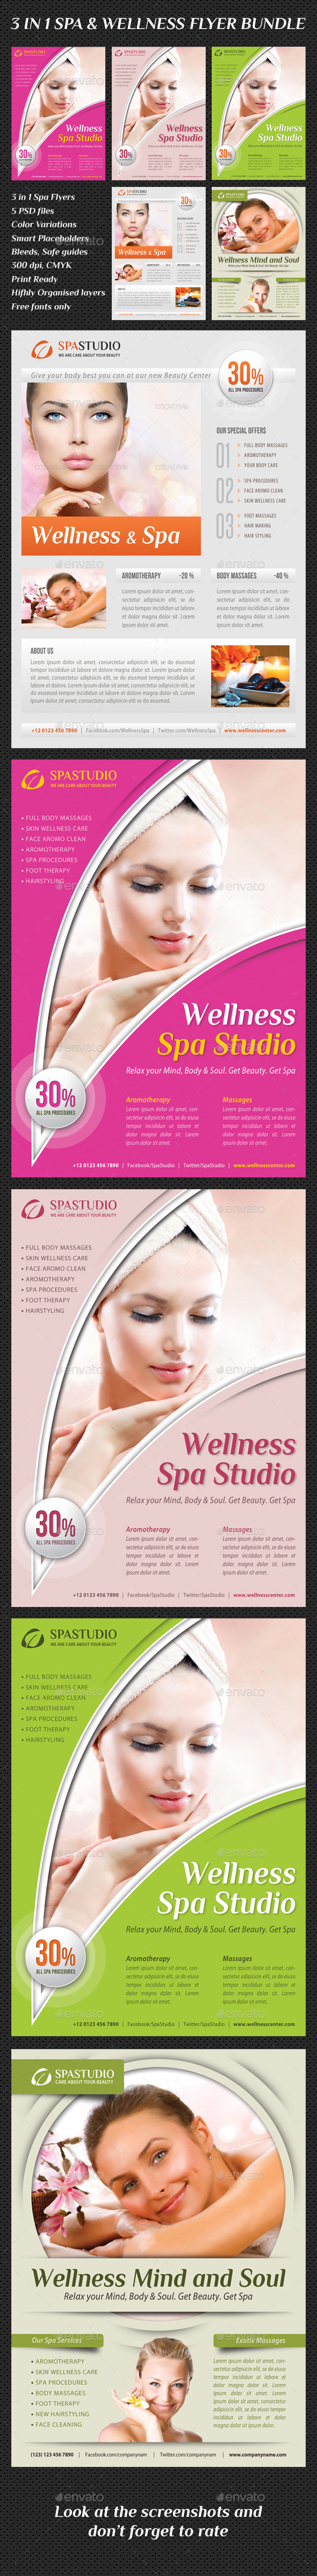 3 in 1 Spa Wellness Flyers Bundle 10 - Commerce Flyers